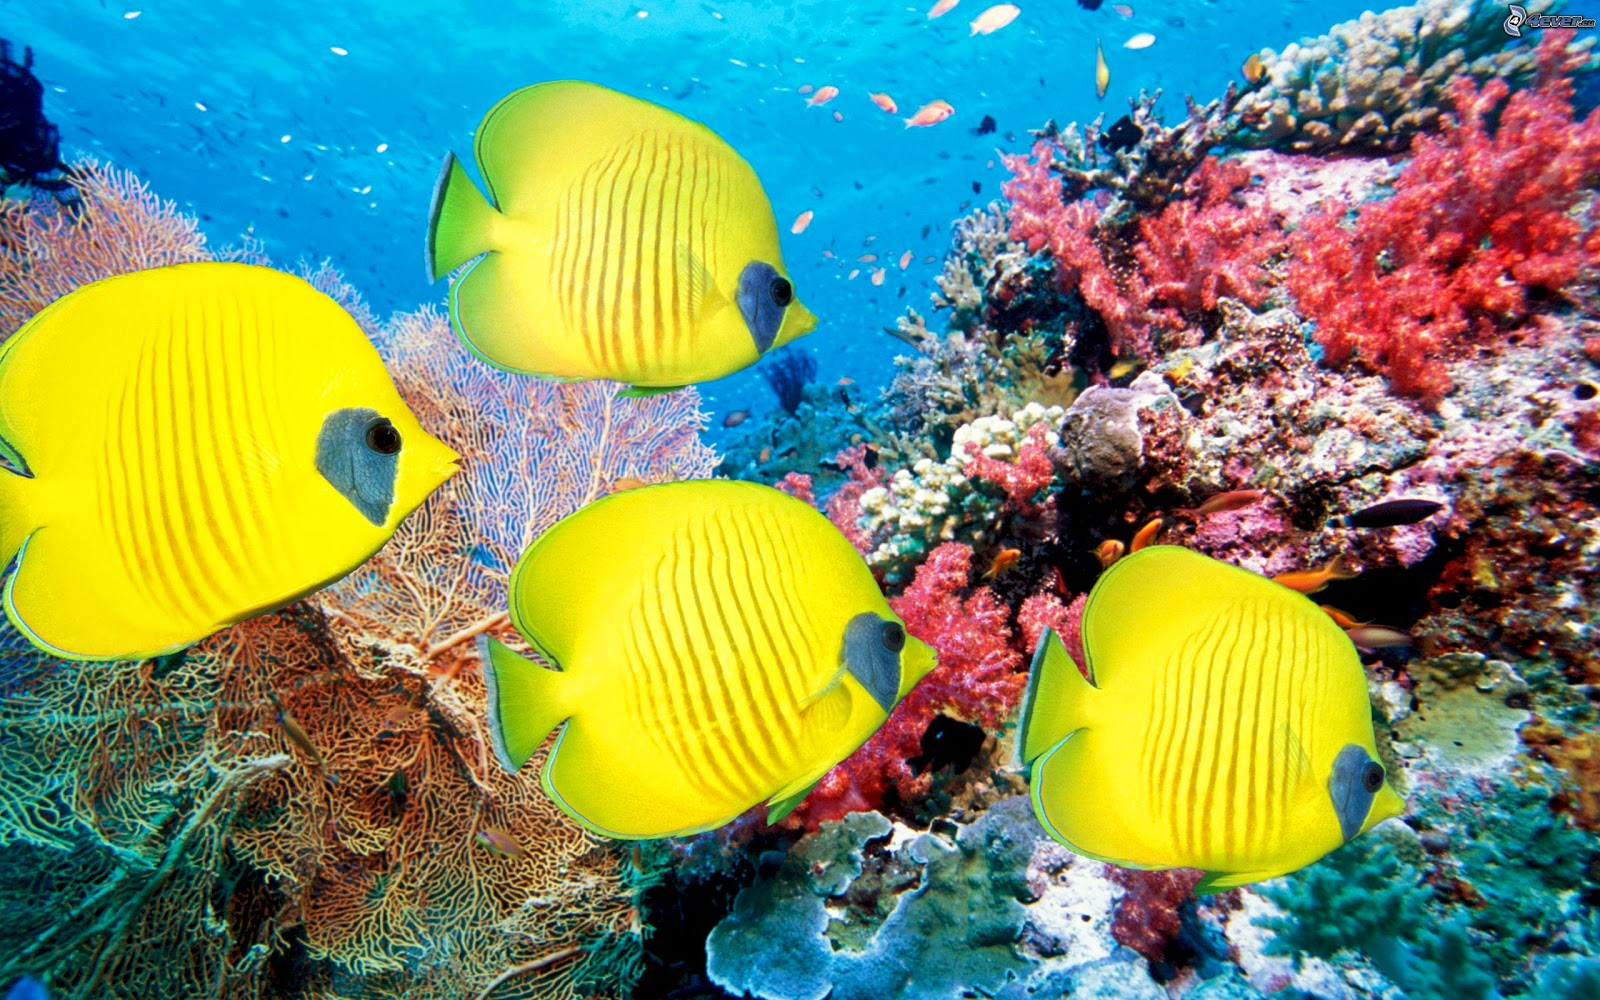 Coral Reef Wallpaper Australia World All free download  - coral reef australia wallpapers